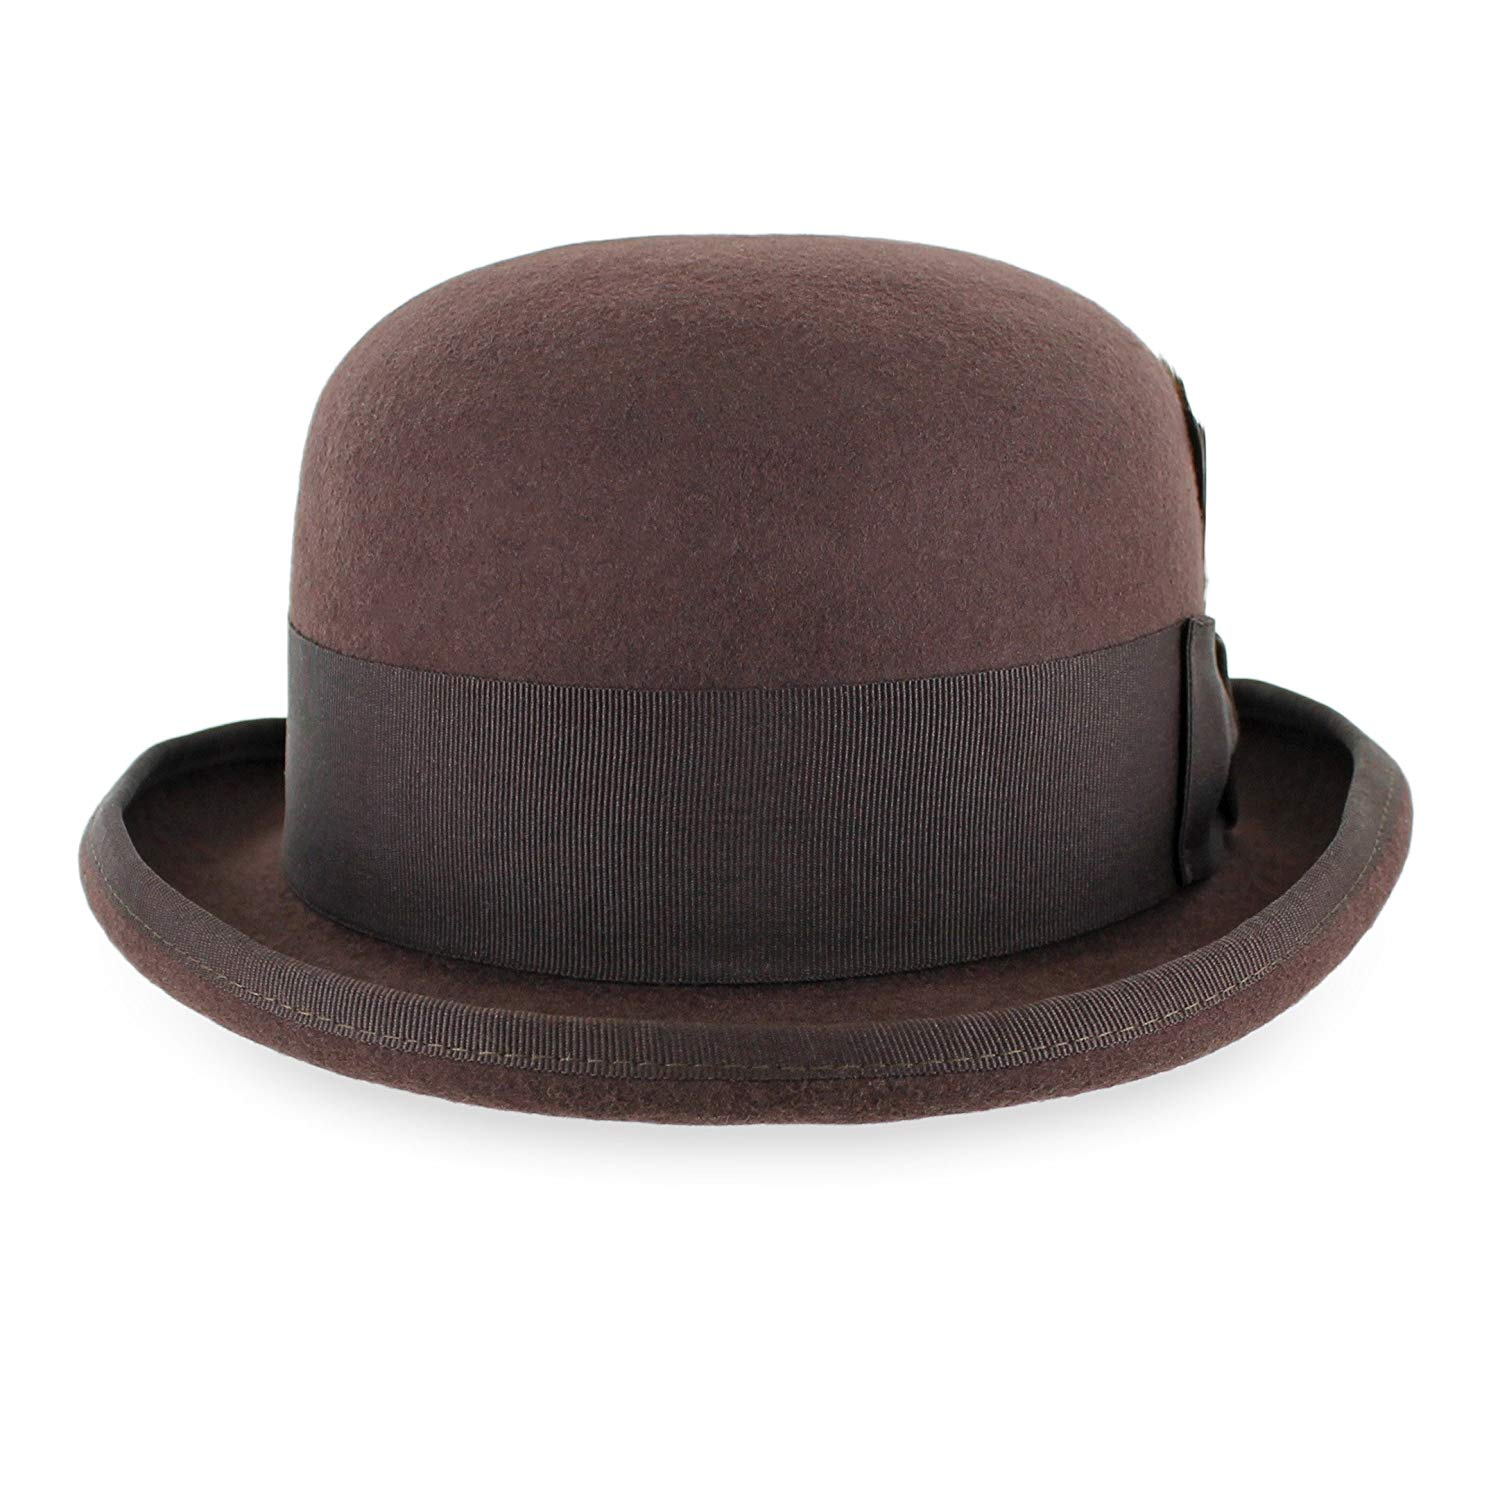 8b430b91 Get Quotations · Belfry Bowler Derby 100% Pure Wool Theater Quality Hat in  Black, Blue Grey